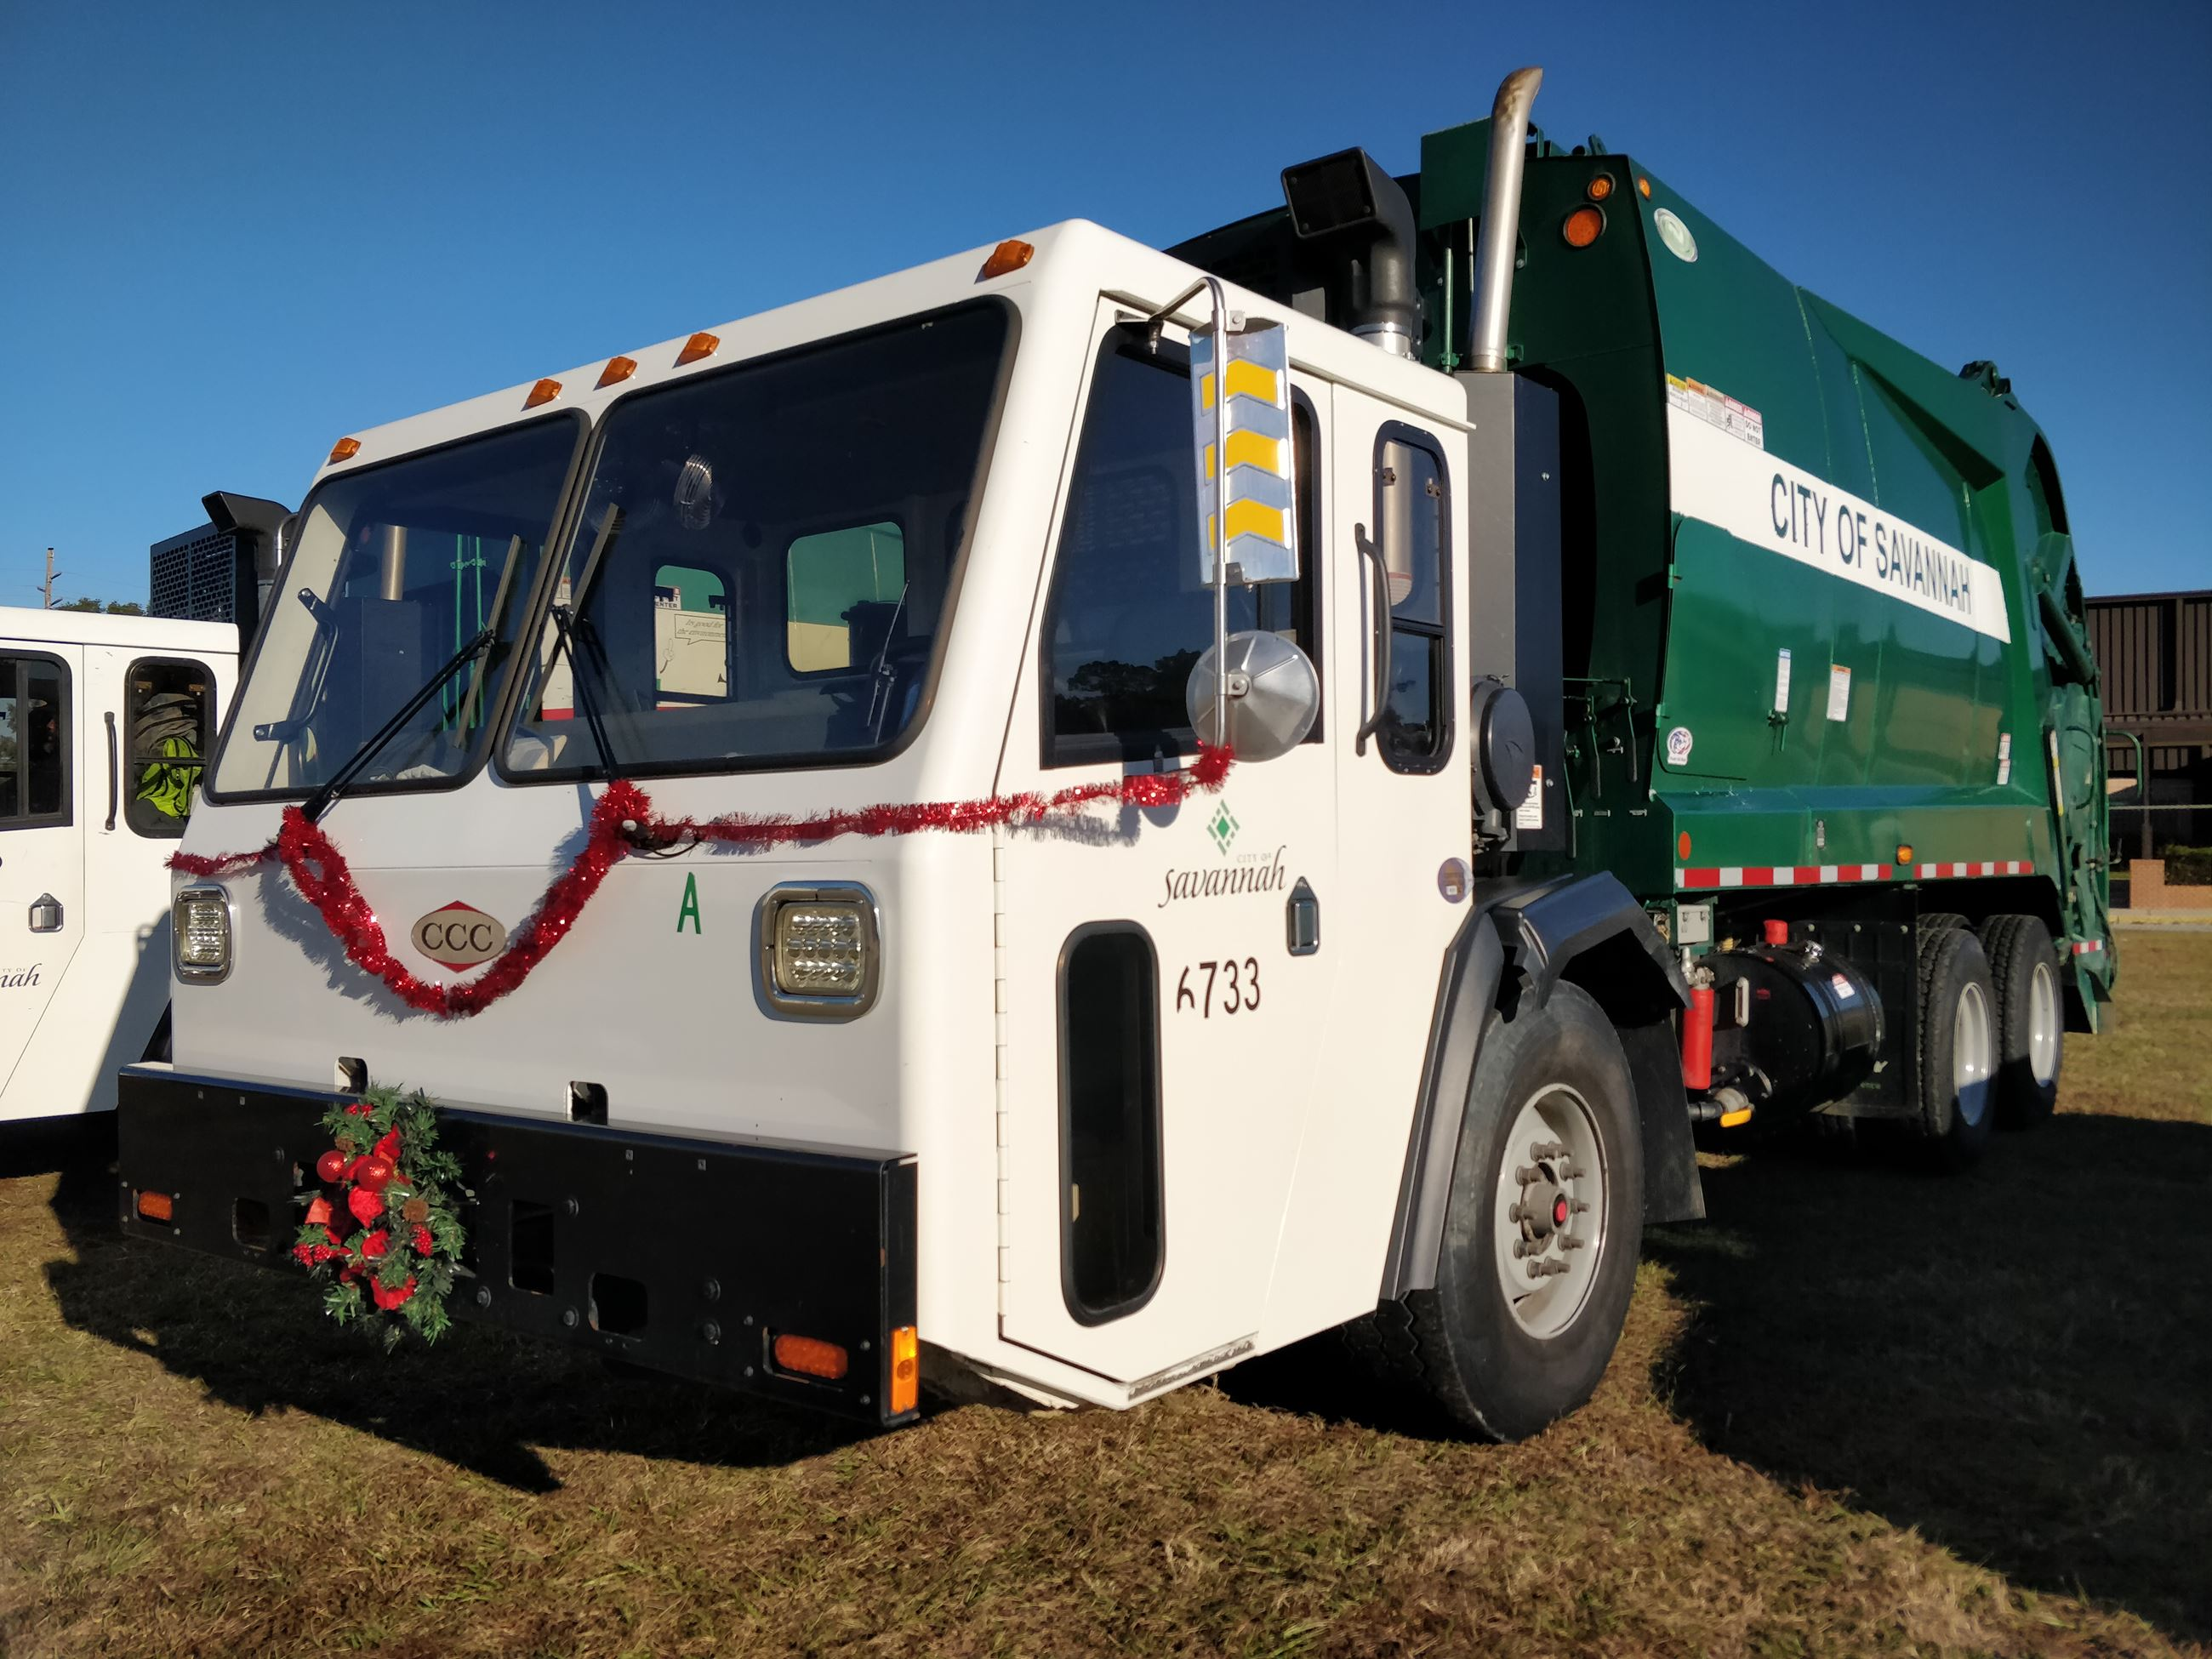 Sanitation Truck Decorated